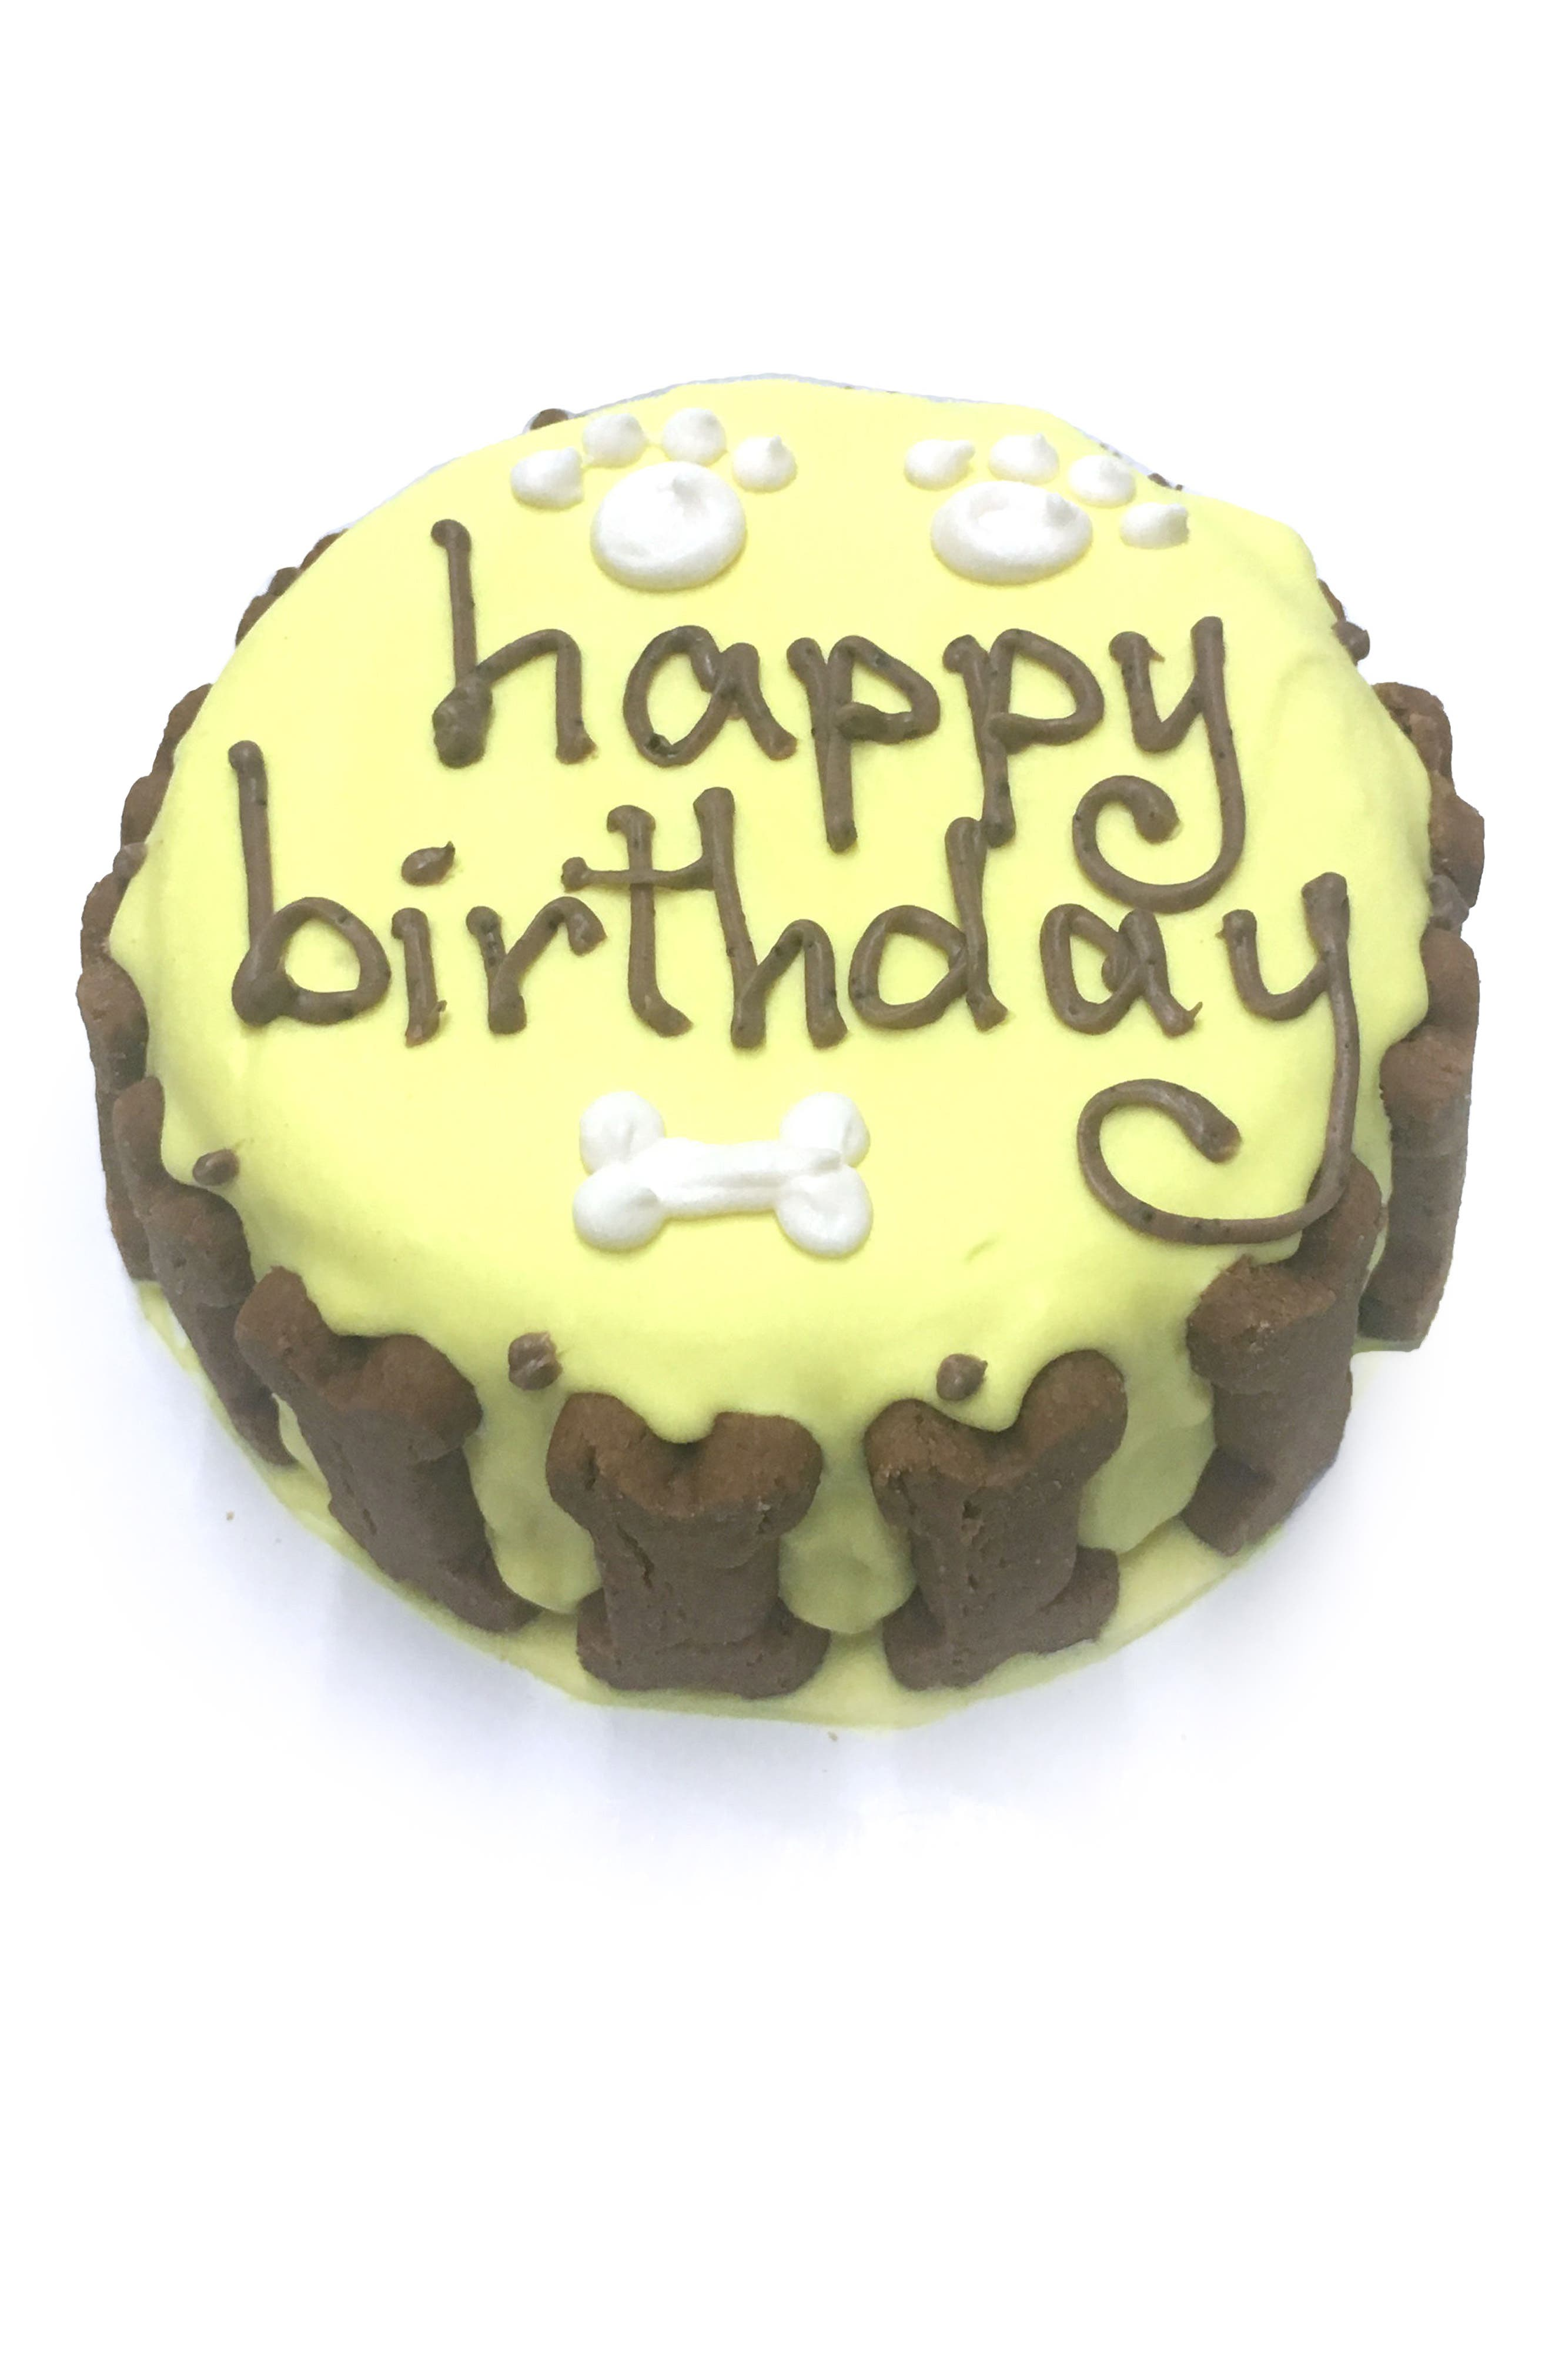 Bubba Rose Biscuit Company Yellow Classic Birthday Cake Dog Treat,                         Main,                         color, 700